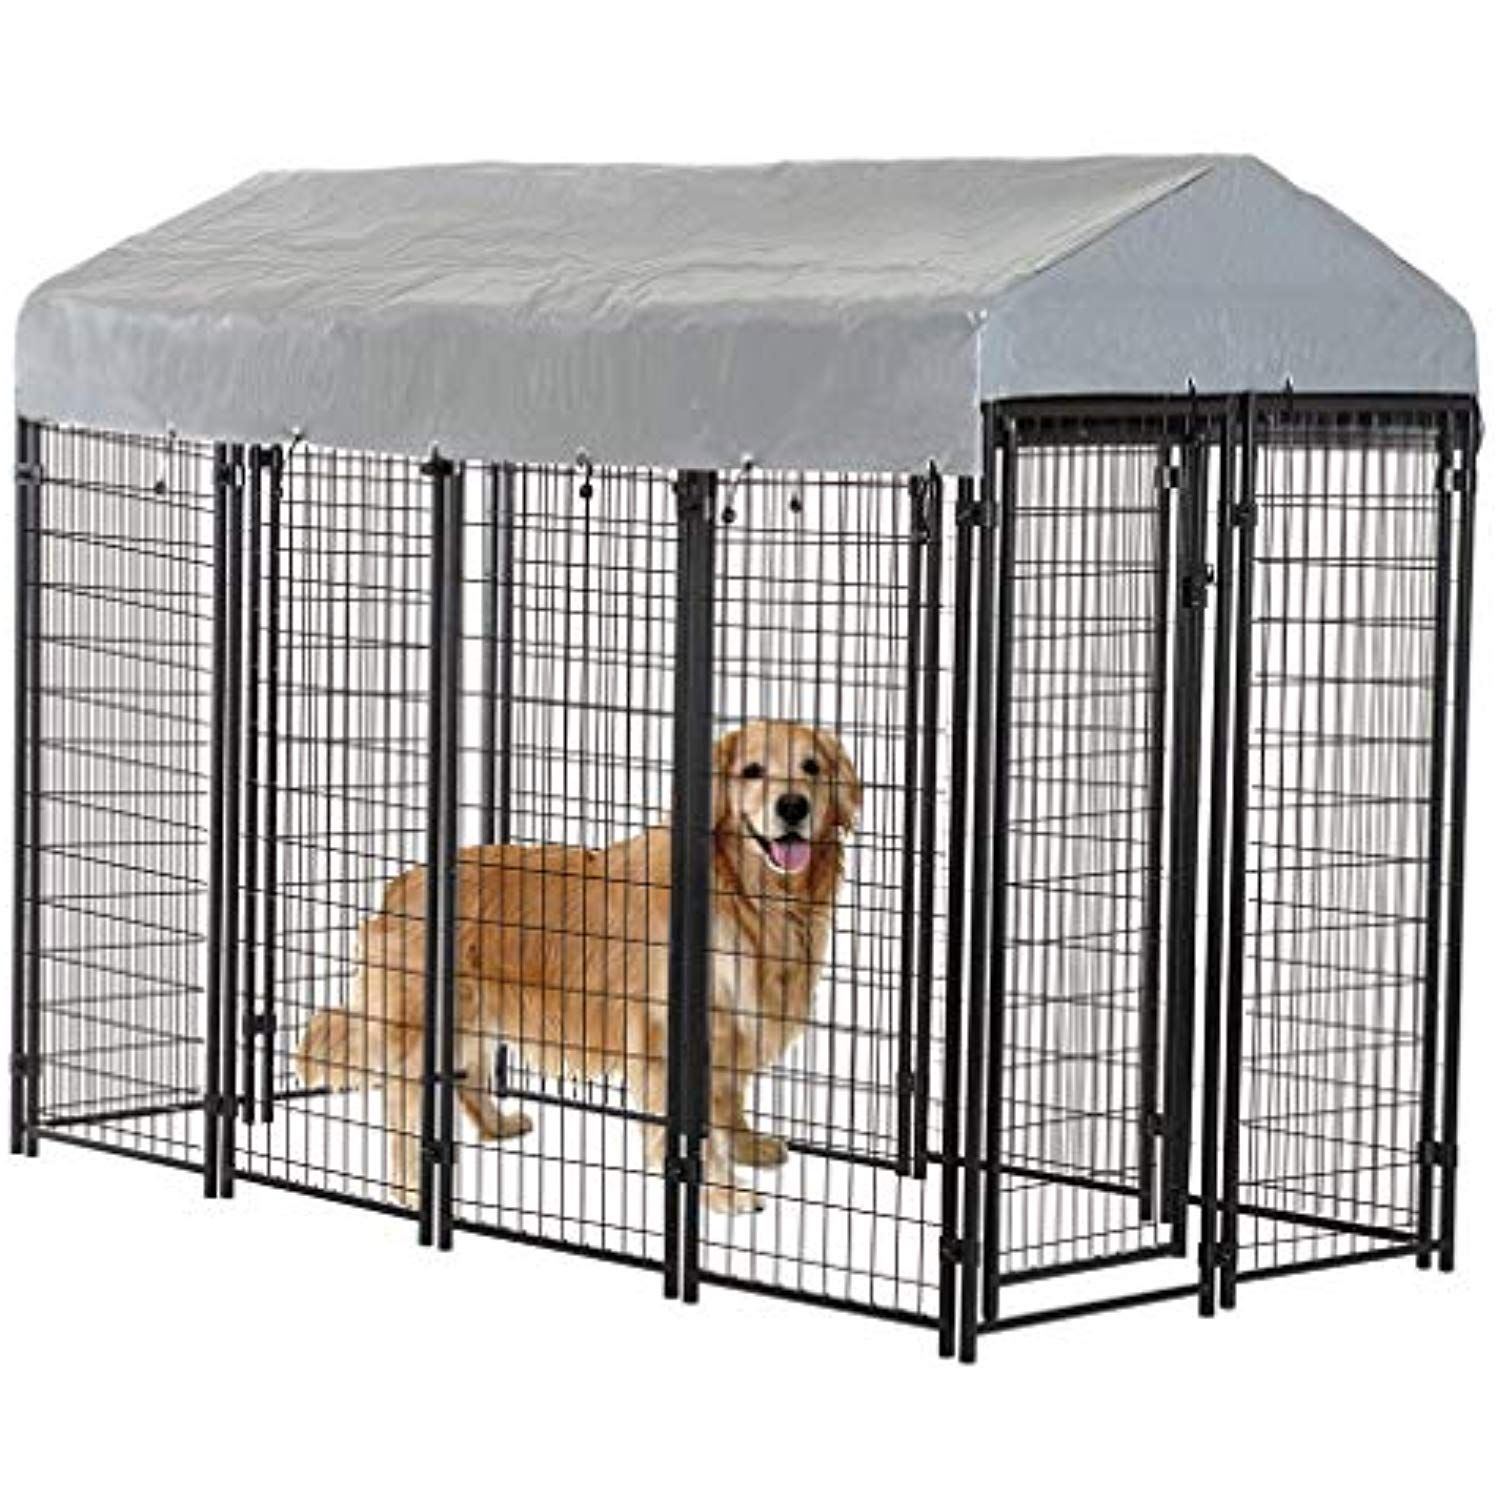 Bestpet Heavy Duty Dog Cage A Outdoor Pet Playpen A This Pet Cage Is Perfect For Containing Small Dogs An Dog Kennel Outdoor Building A Dog Kennel Dog Cages